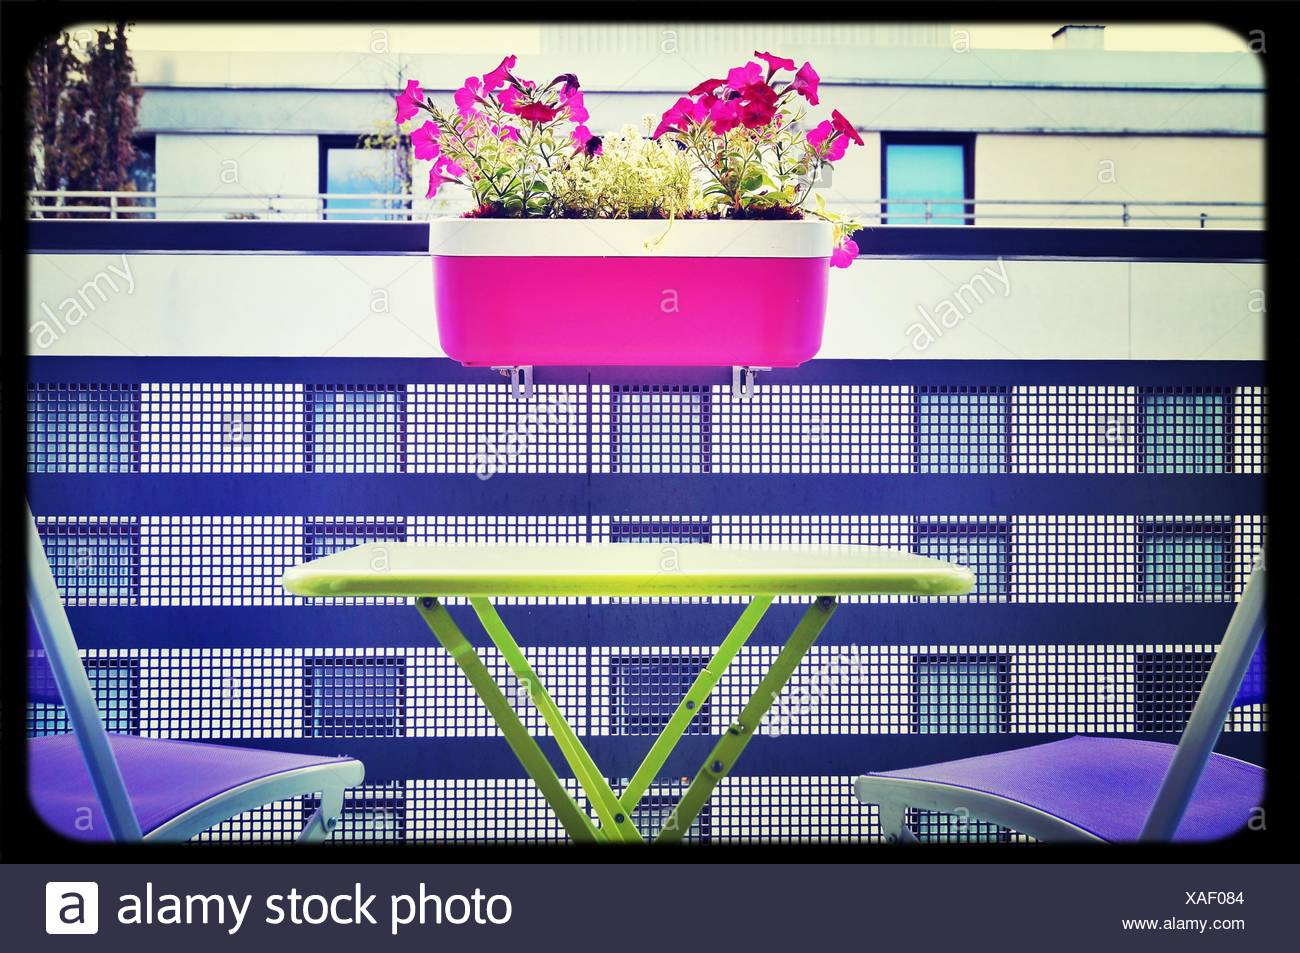 View Of Table And Chairs With Flowers In Window Box - Stock Image